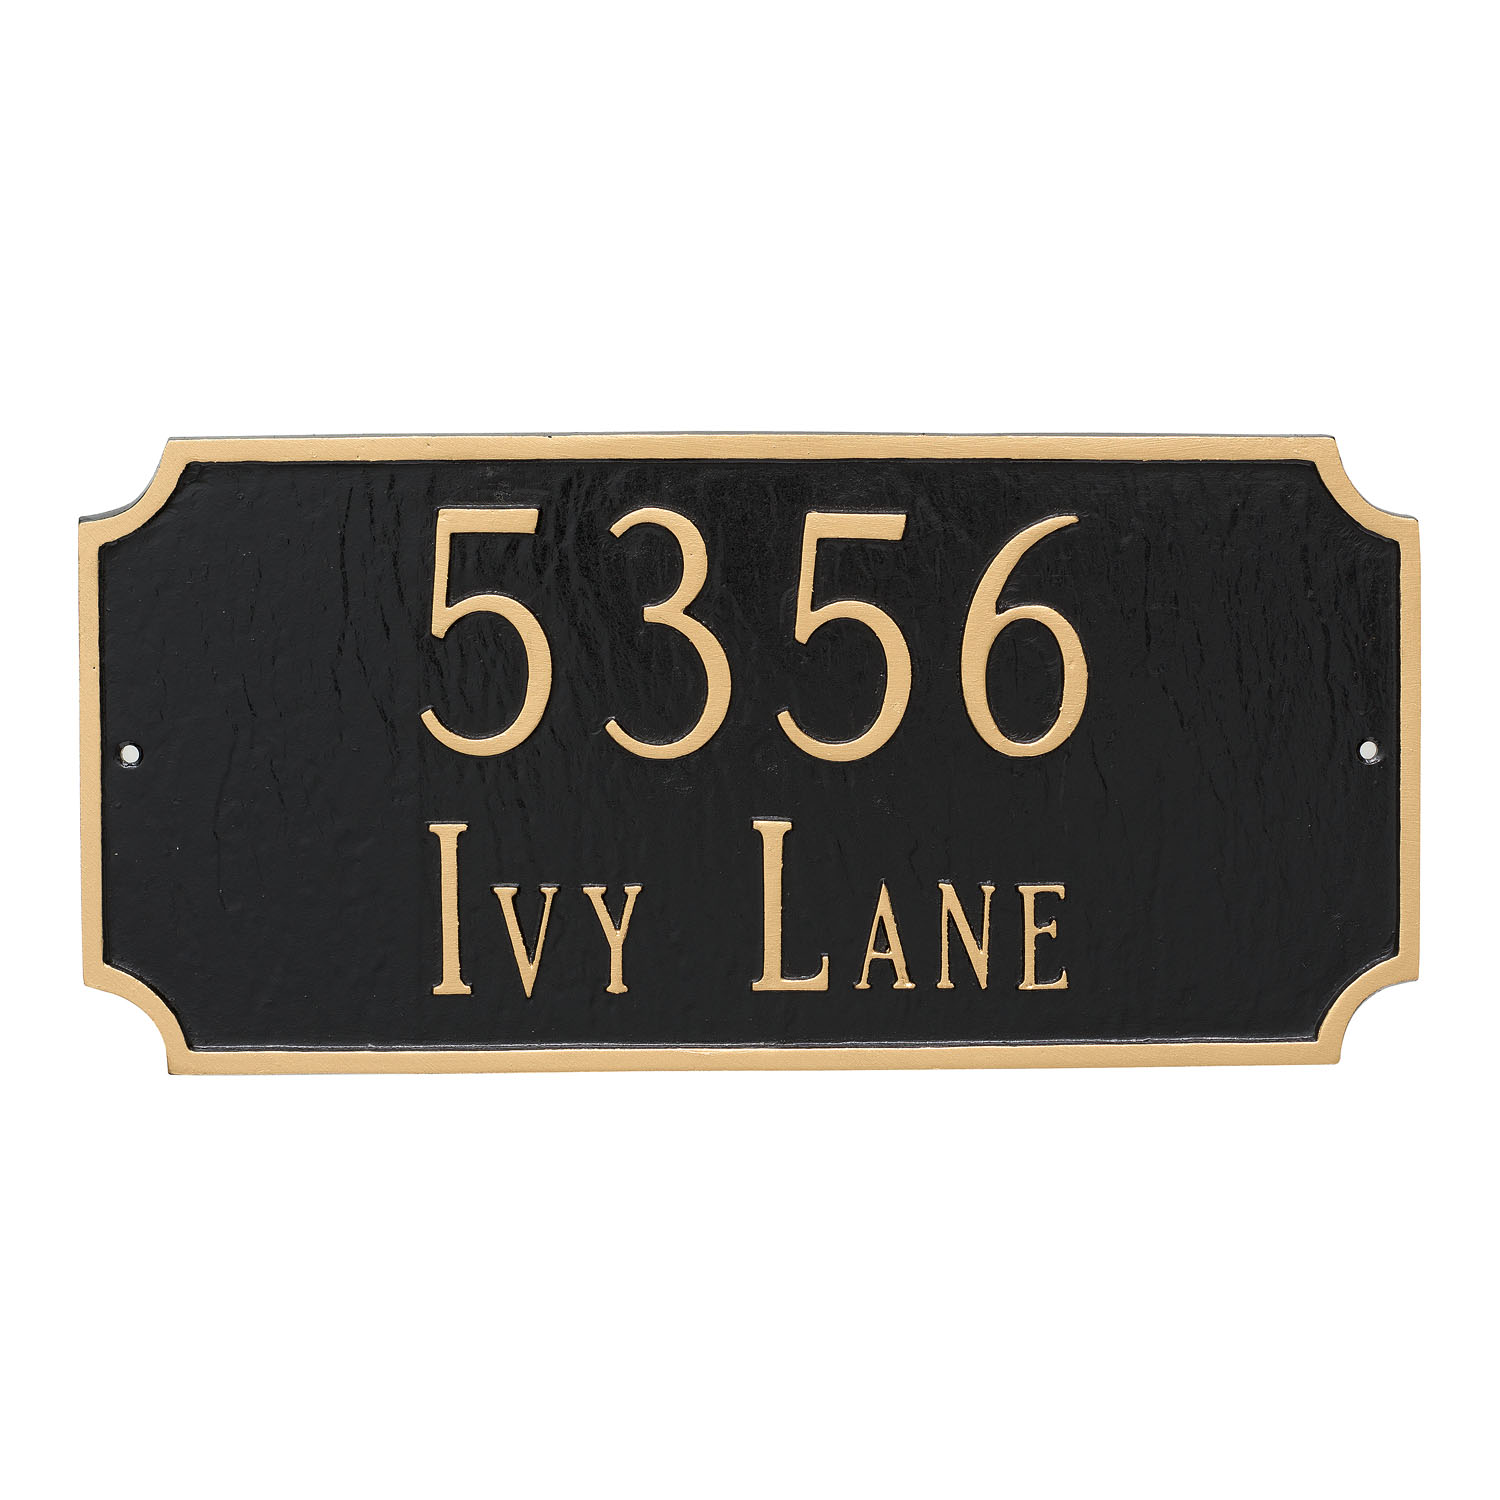 Princeton Address Plaque - Standard - 2 Line